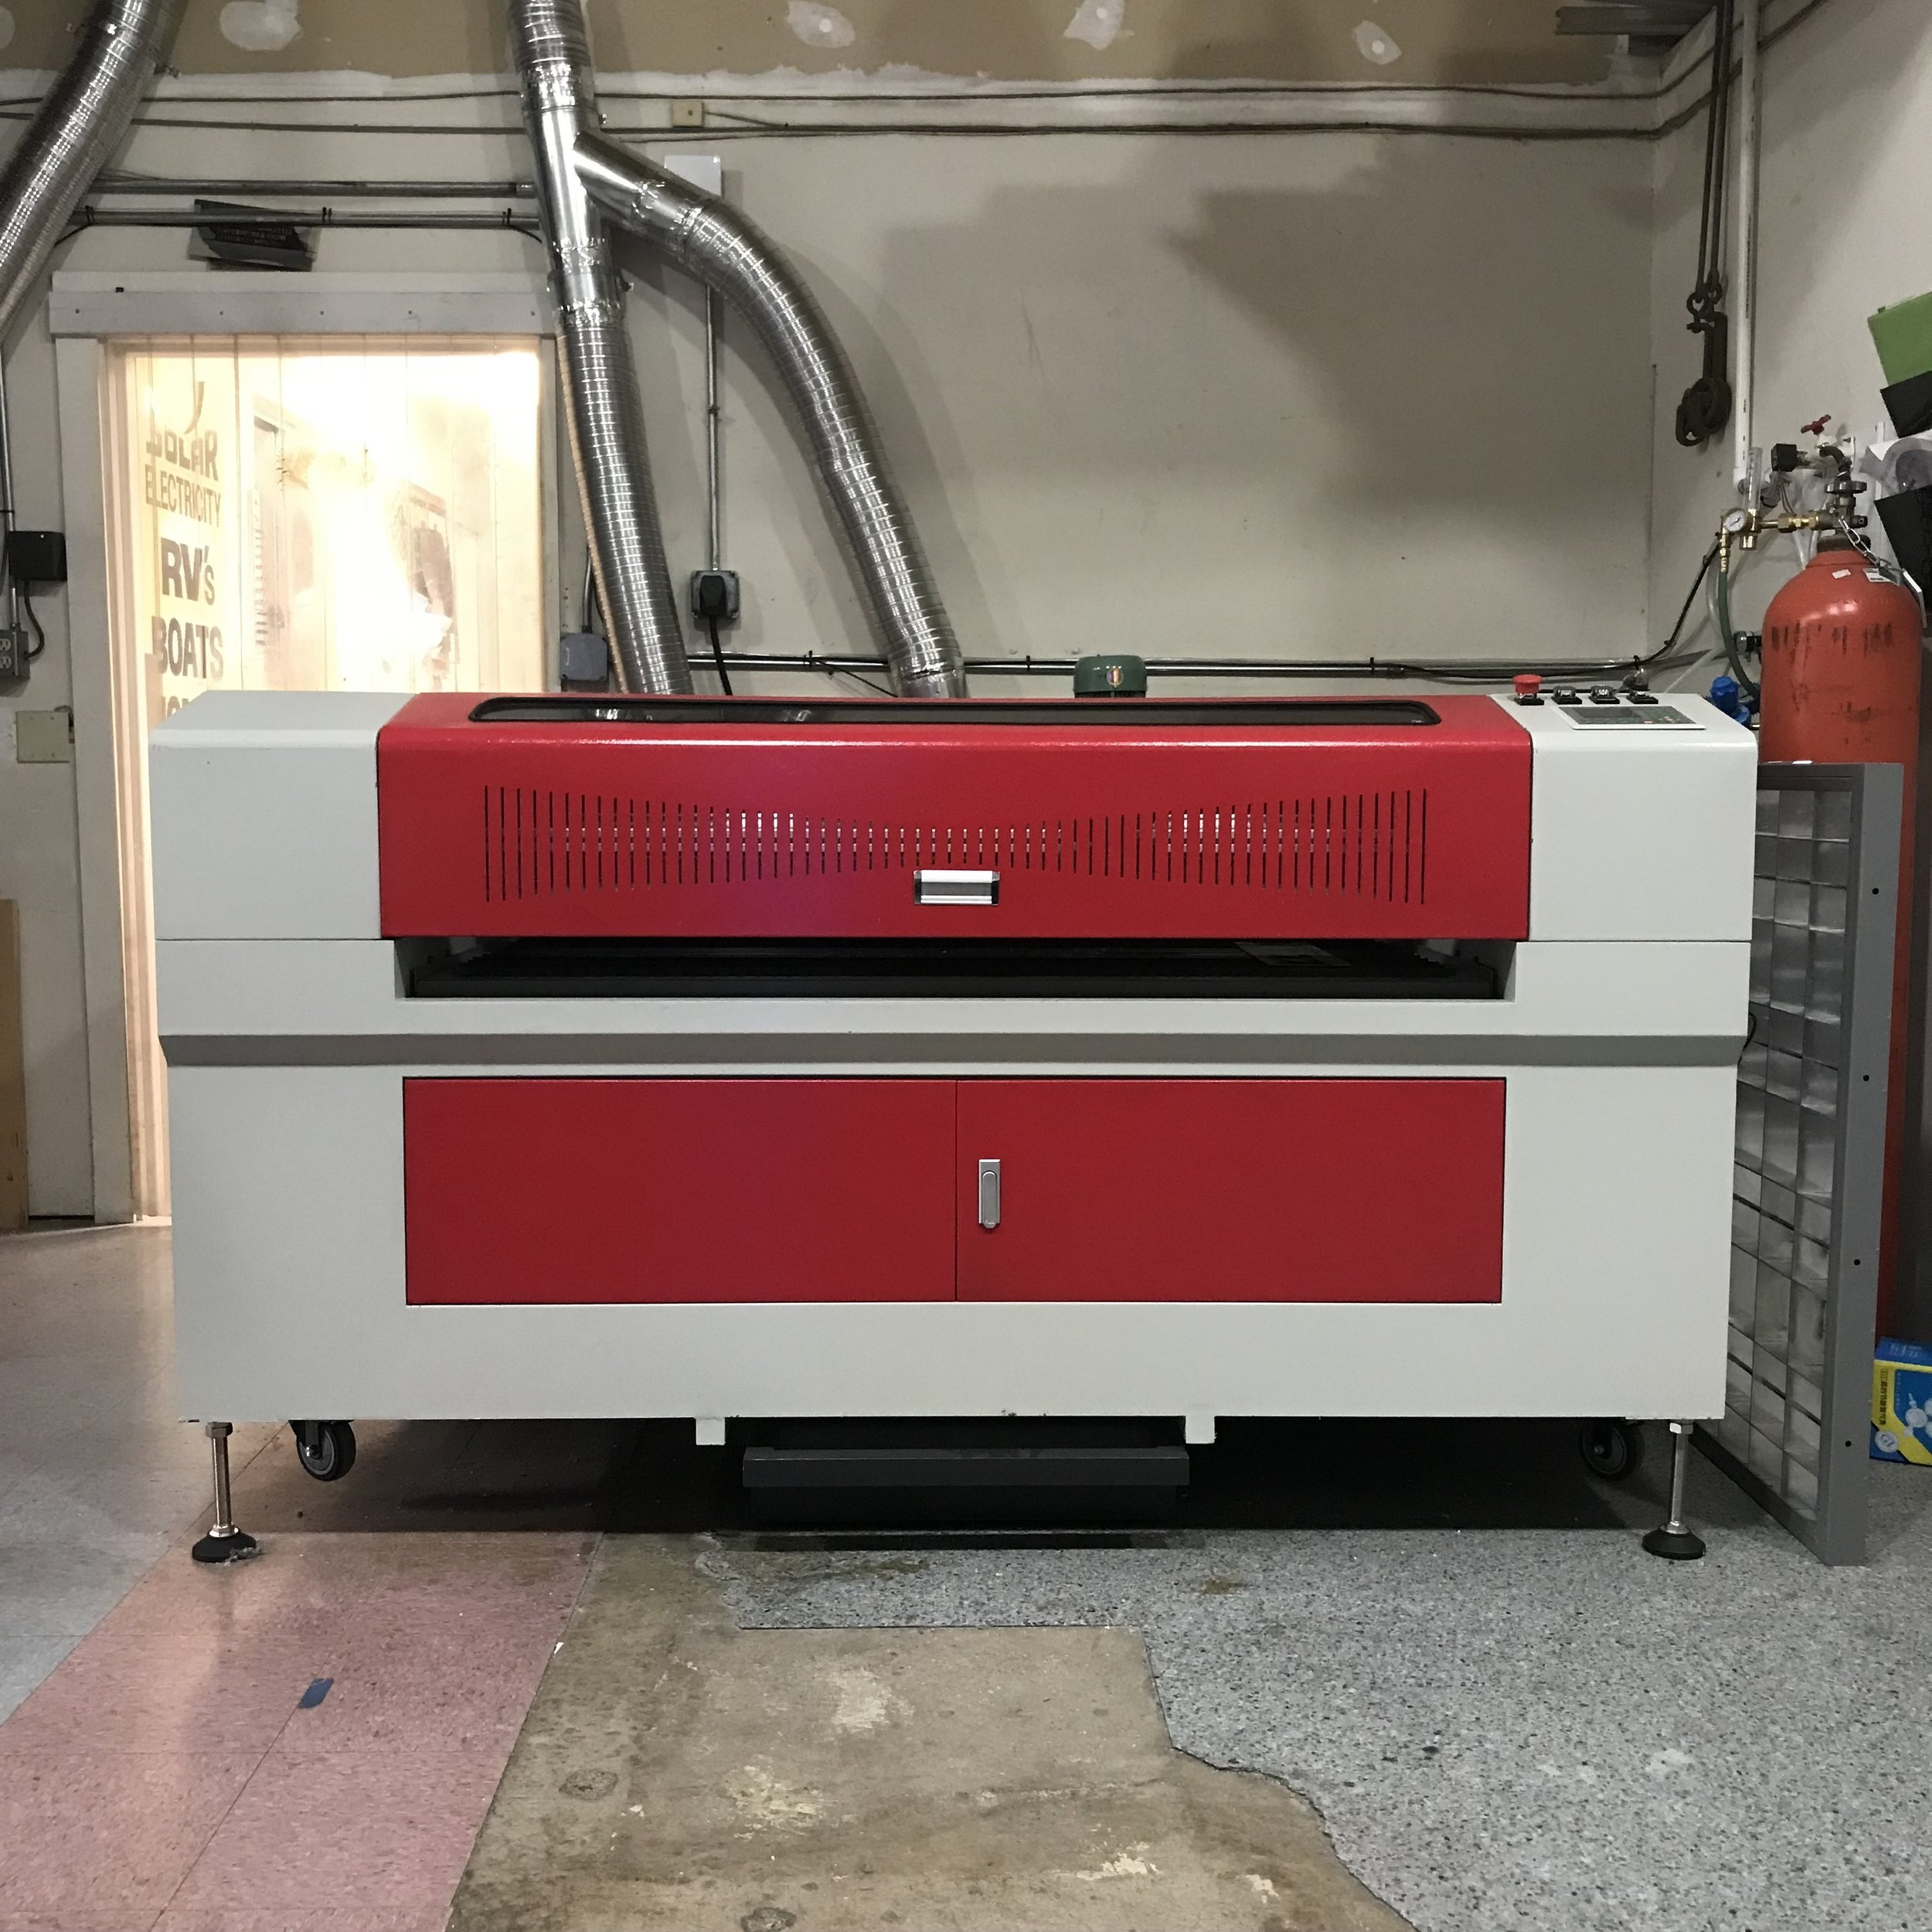 Here's our 380 watt CO2 laser, with a 40 x 30 inch bed; this powerful laser capable of cutting .125 inch stainless and carbon steel in addition to 1 inch acrylic. We can take your Illustrator file (.ai) or .dxf file and turn your virtual file into something tangible.